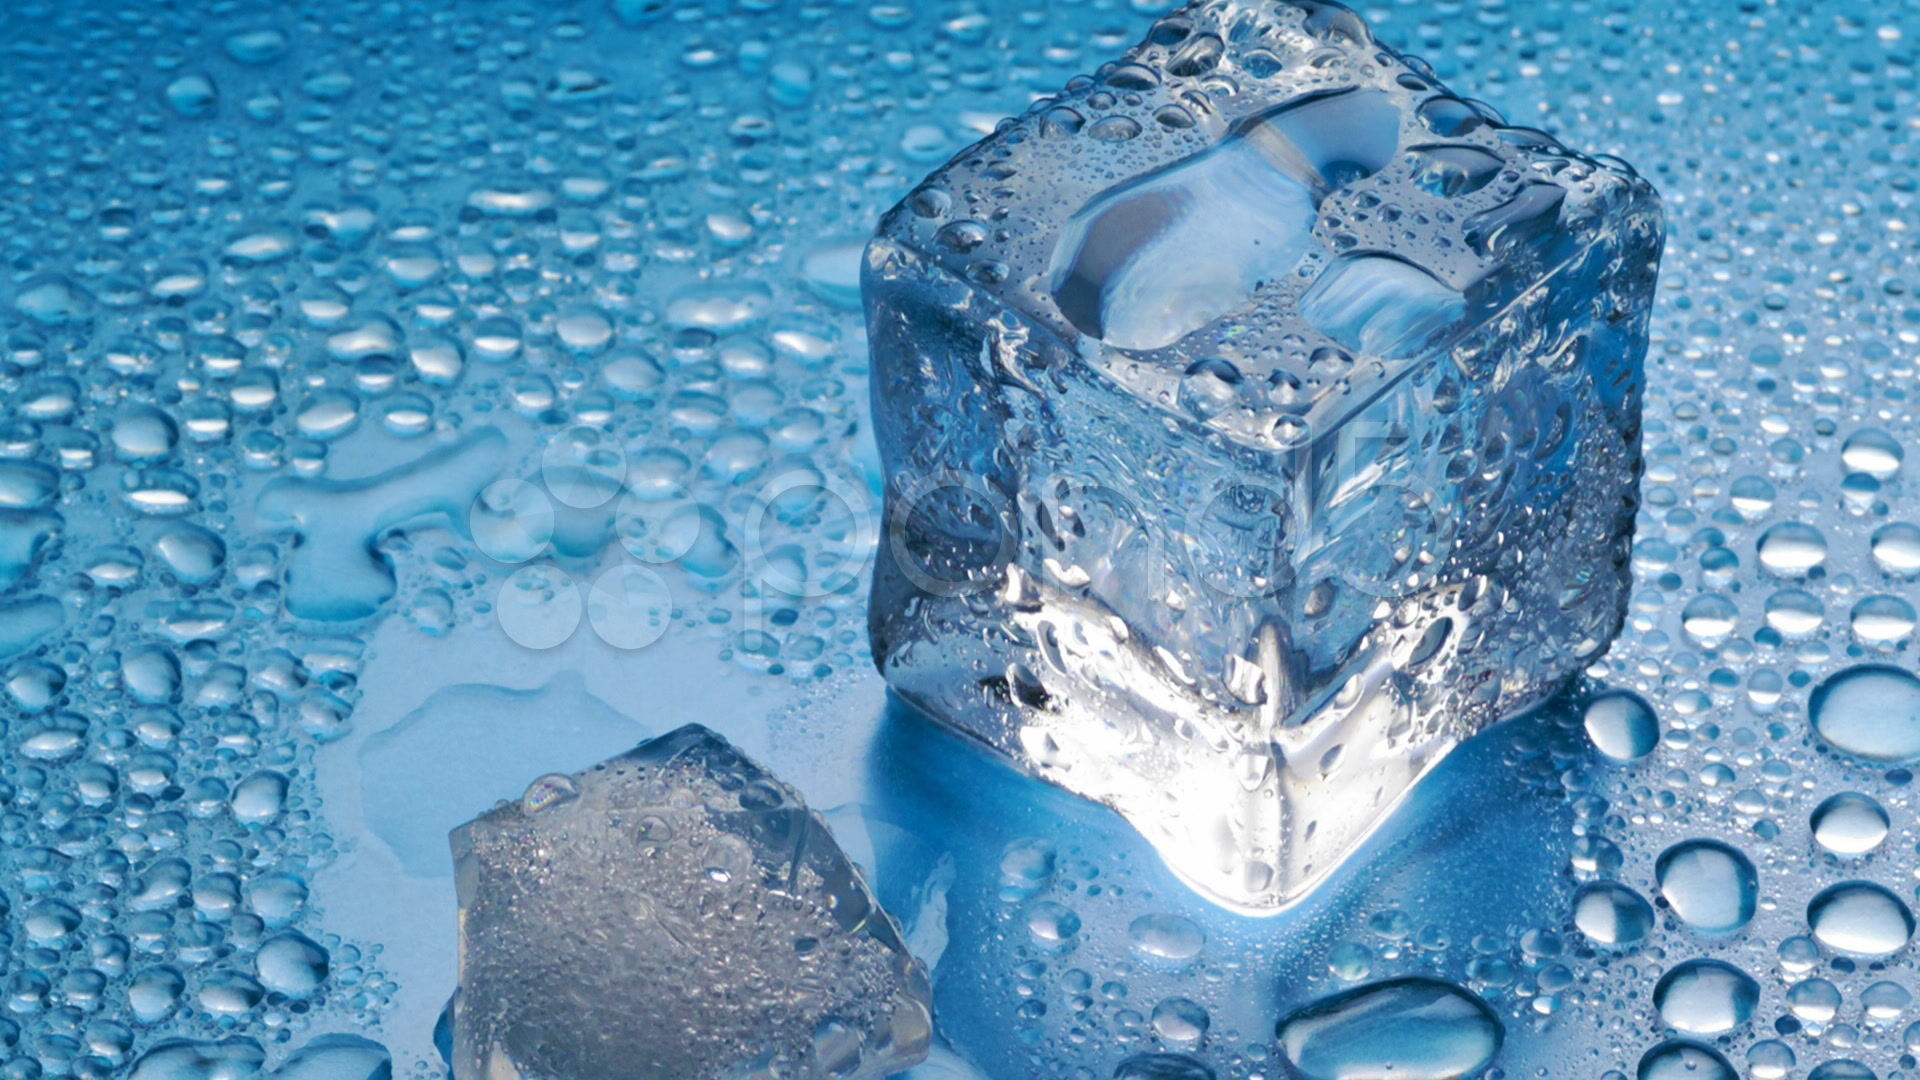 37 Melting ice cube wallpaper | Wallpapers Crazy 1193 ...